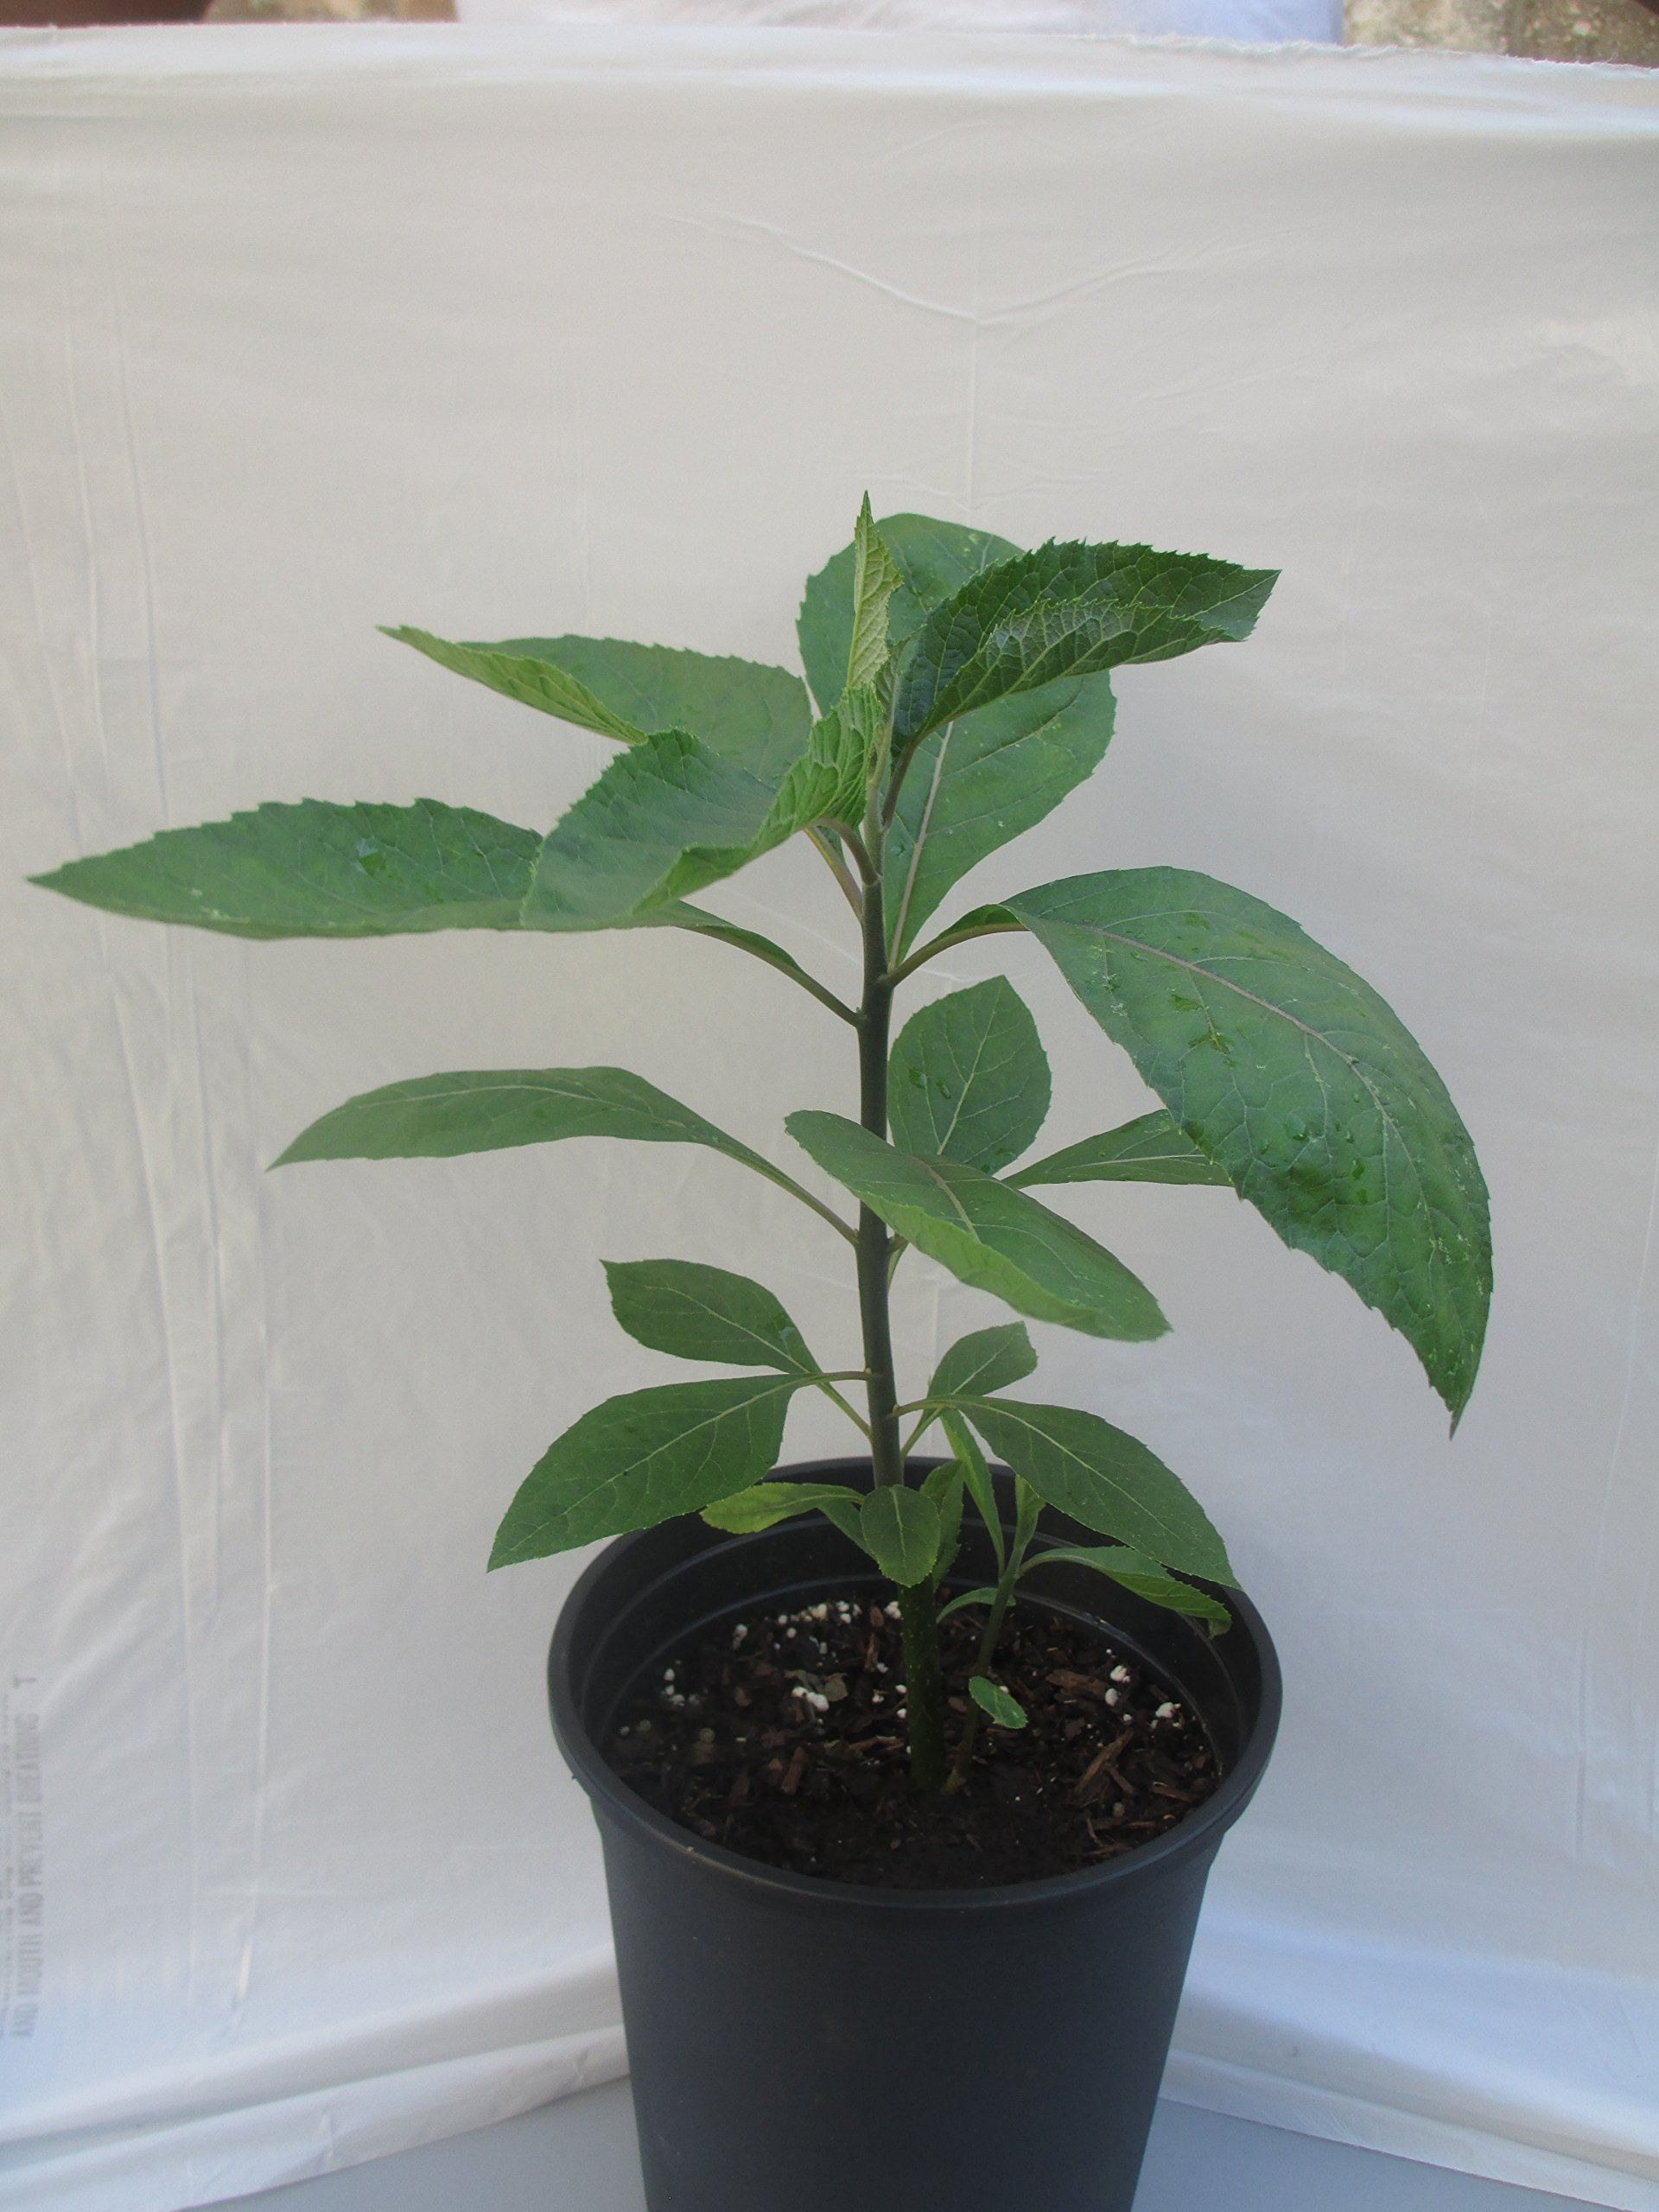 Bitter Leaf Plant – Vernonia amygdalina. Great Herbal Medicinal Health Benefits And Nutritional Value. Rich In Vitamins. Fresh Leafy Greens Vegetable Used For Soup, Stew, Tea, Salad, Juice And Drinks.